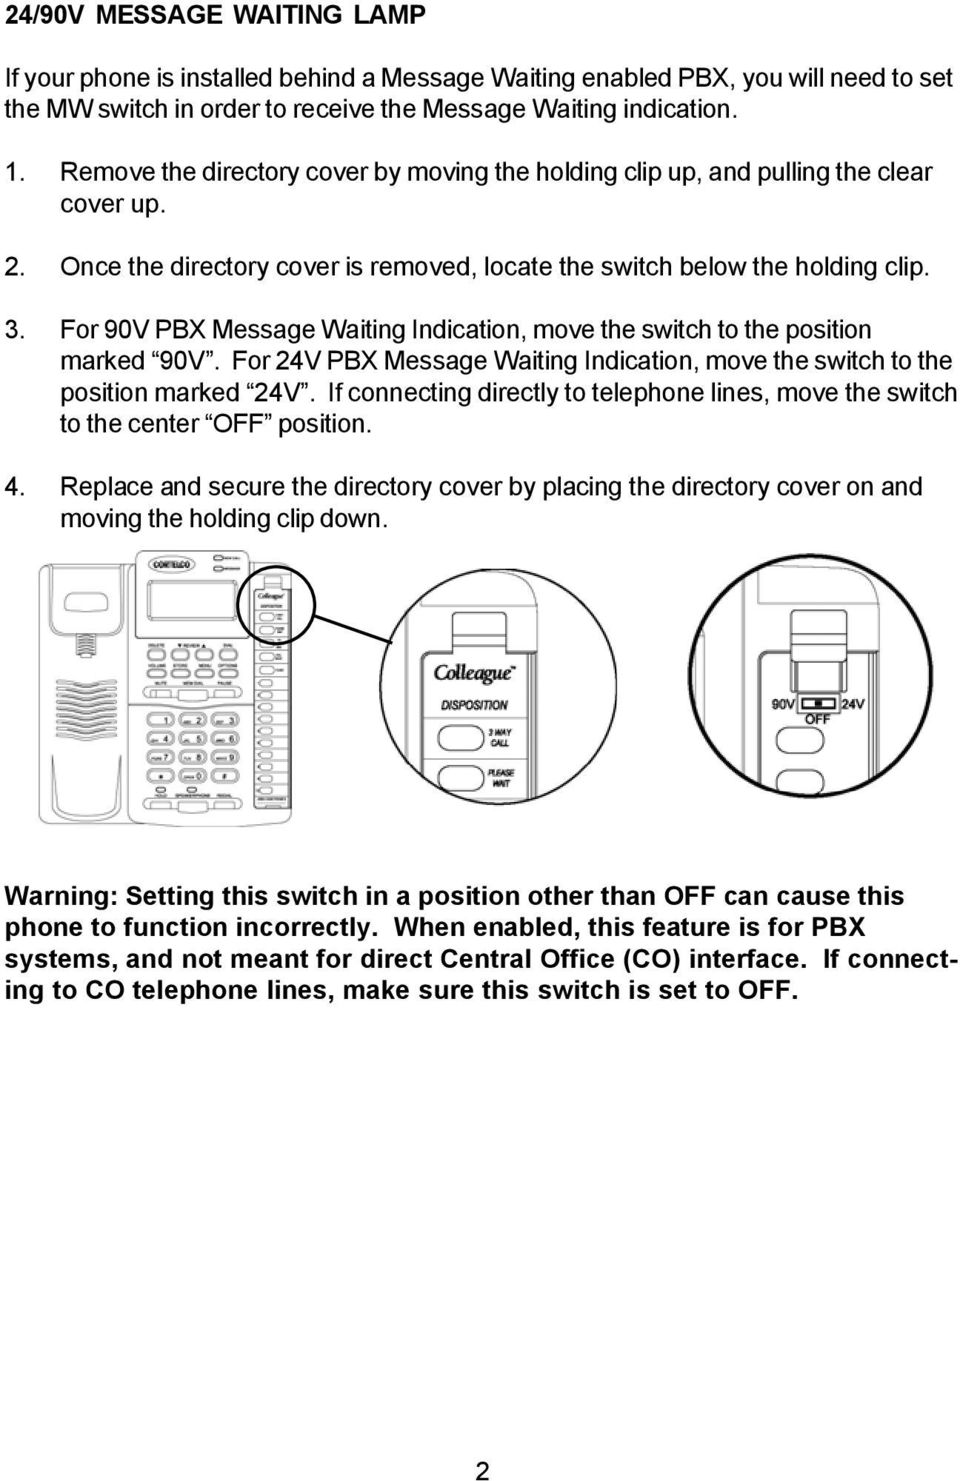 For 90V PBX Message Waiting Indication, move the switch to the position marked 90V. For 24V PBX Message Waiting Indication, move the switch to the position marked 24V.